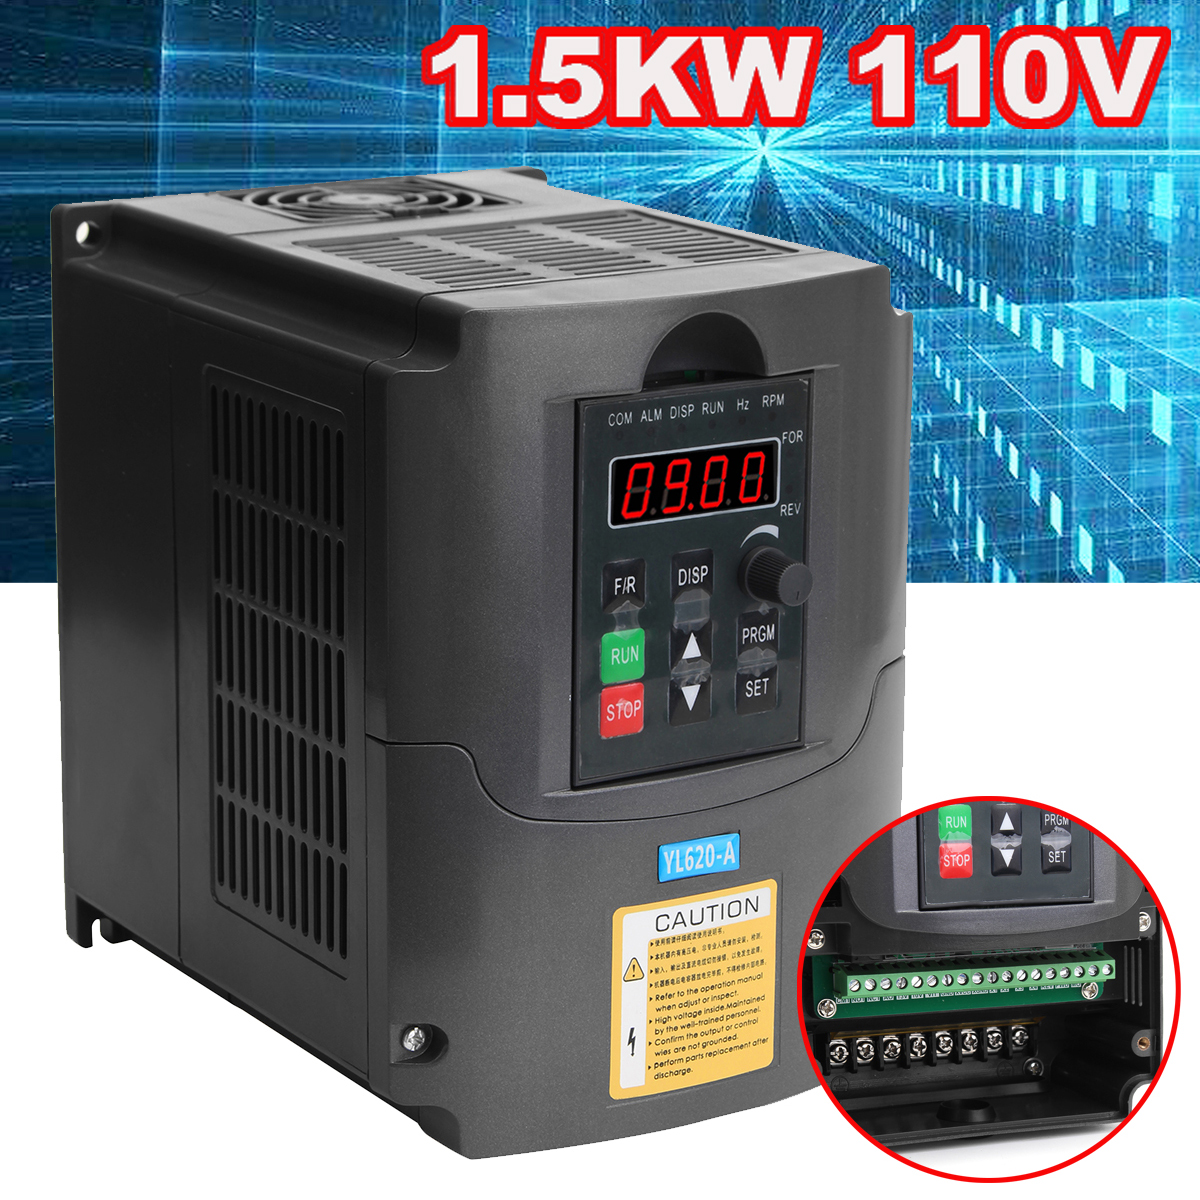 New 110V 1.5kw AC Variable Frequency Inverter Converter 3 Phase Output Built-in PLC Single Phase Space Voltage Vector Modulation 110v 2 2kw ac variable frequency inverter converter 3 phase output single phase input space voltage vector modulation